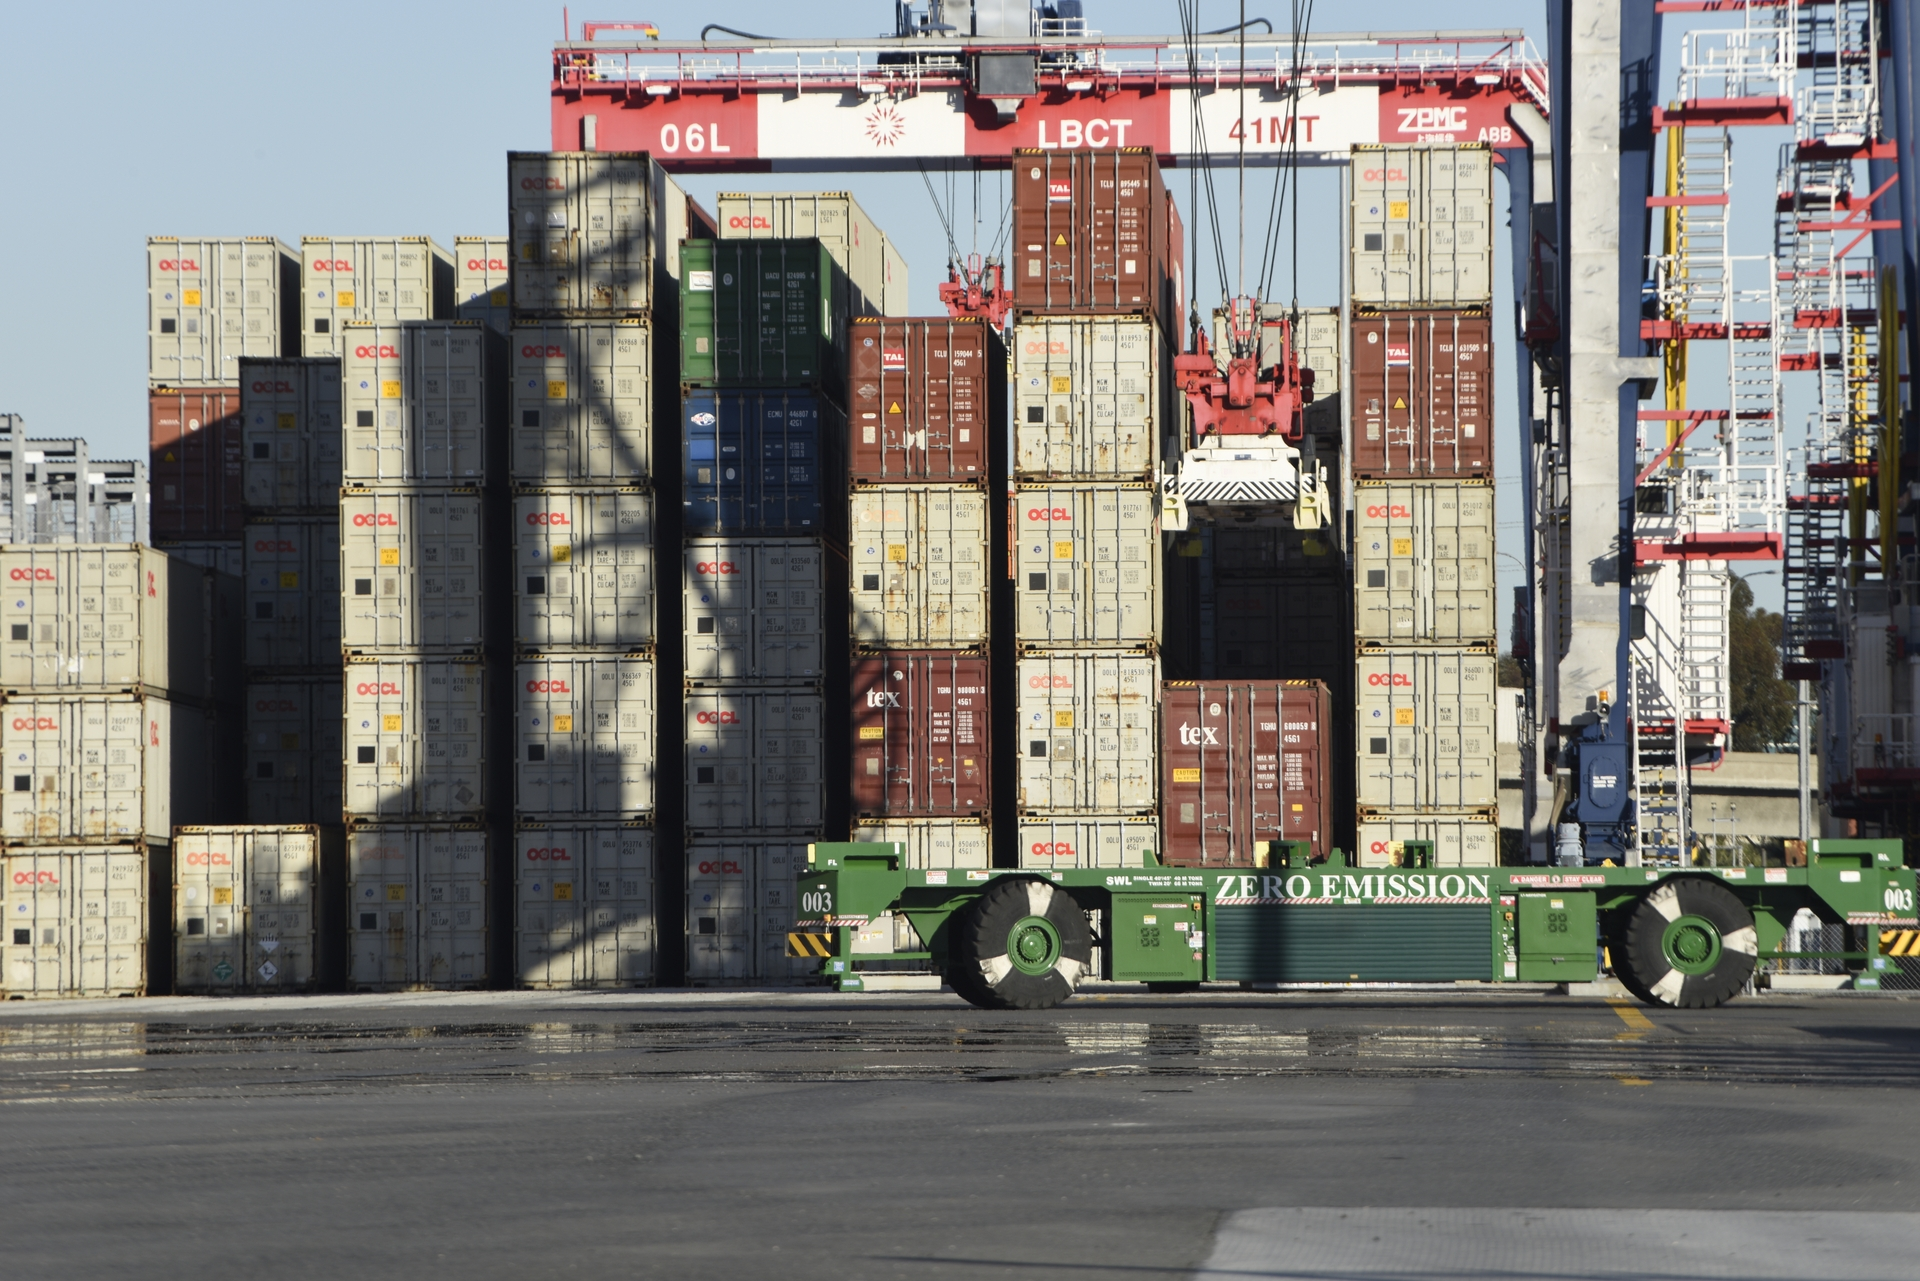 To accommodate electrification of the Long Beach Container Terminal, SCE installed a dedicated substation and miles of electrical cable.